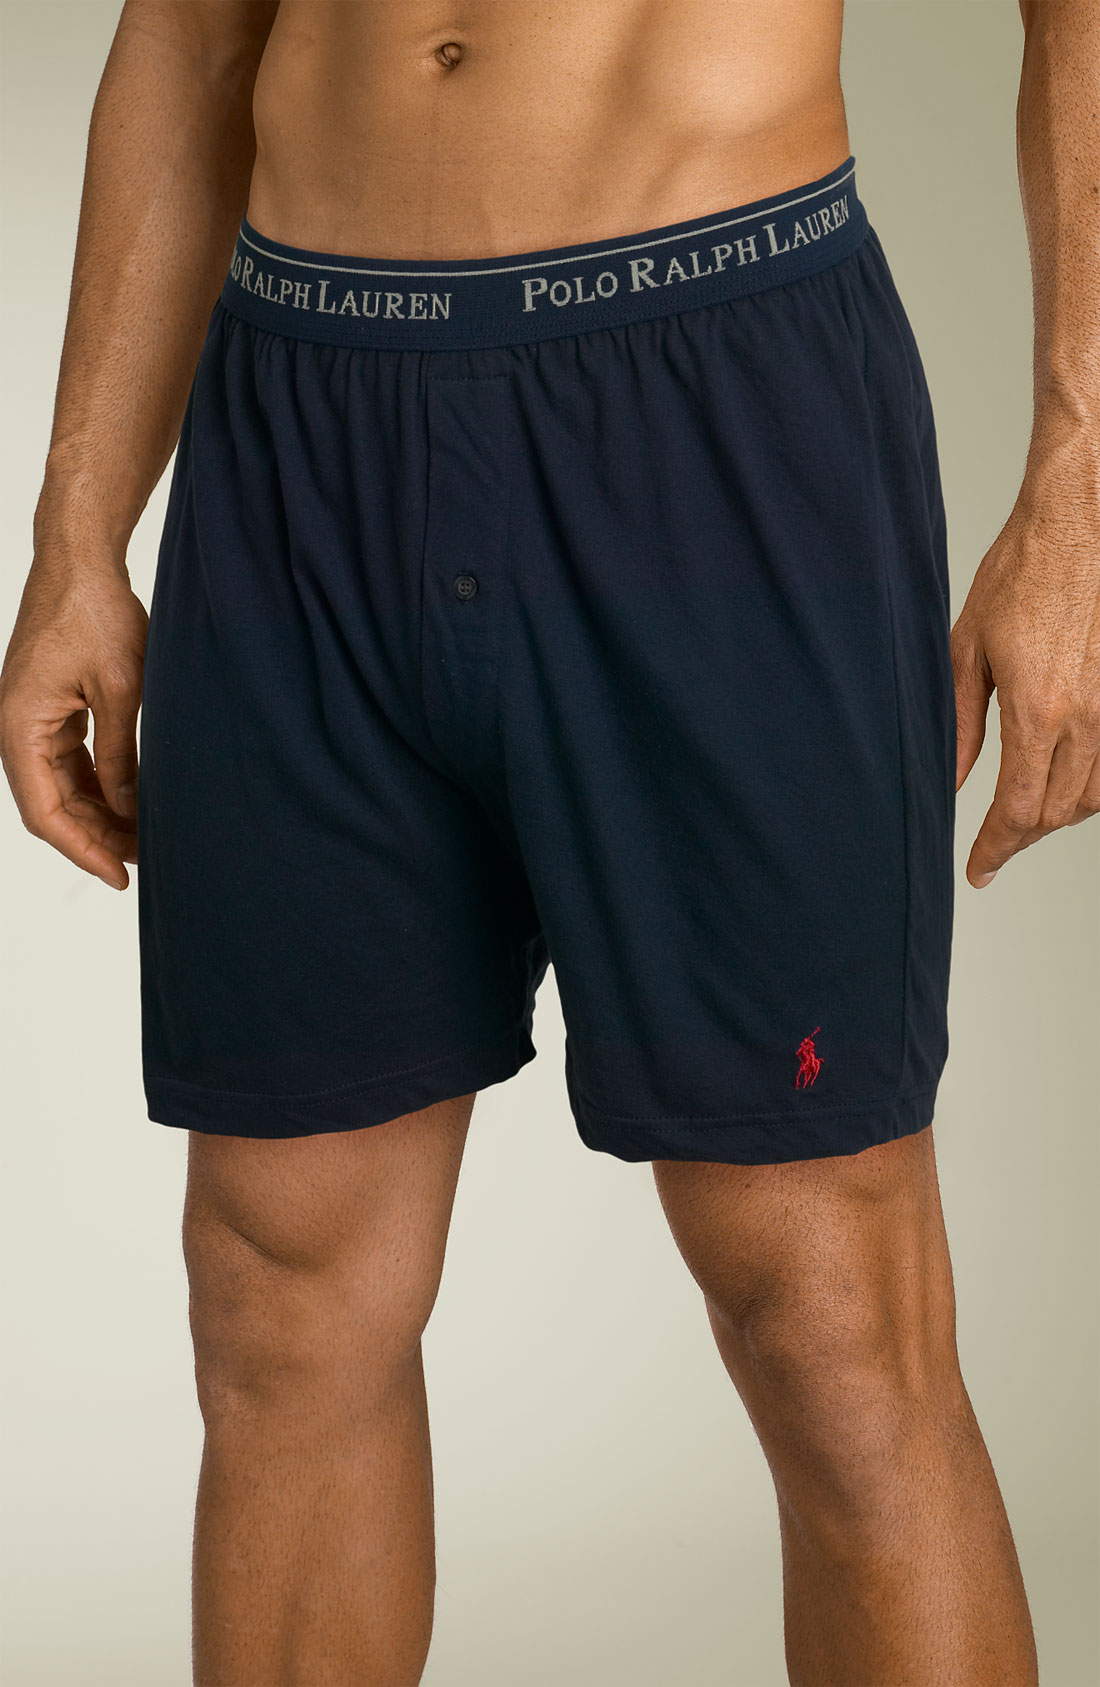 lyst polo ralph lauren knit boxer shorts in blue for men. Black Bedroom Furniture Sets. Home Design Ideas